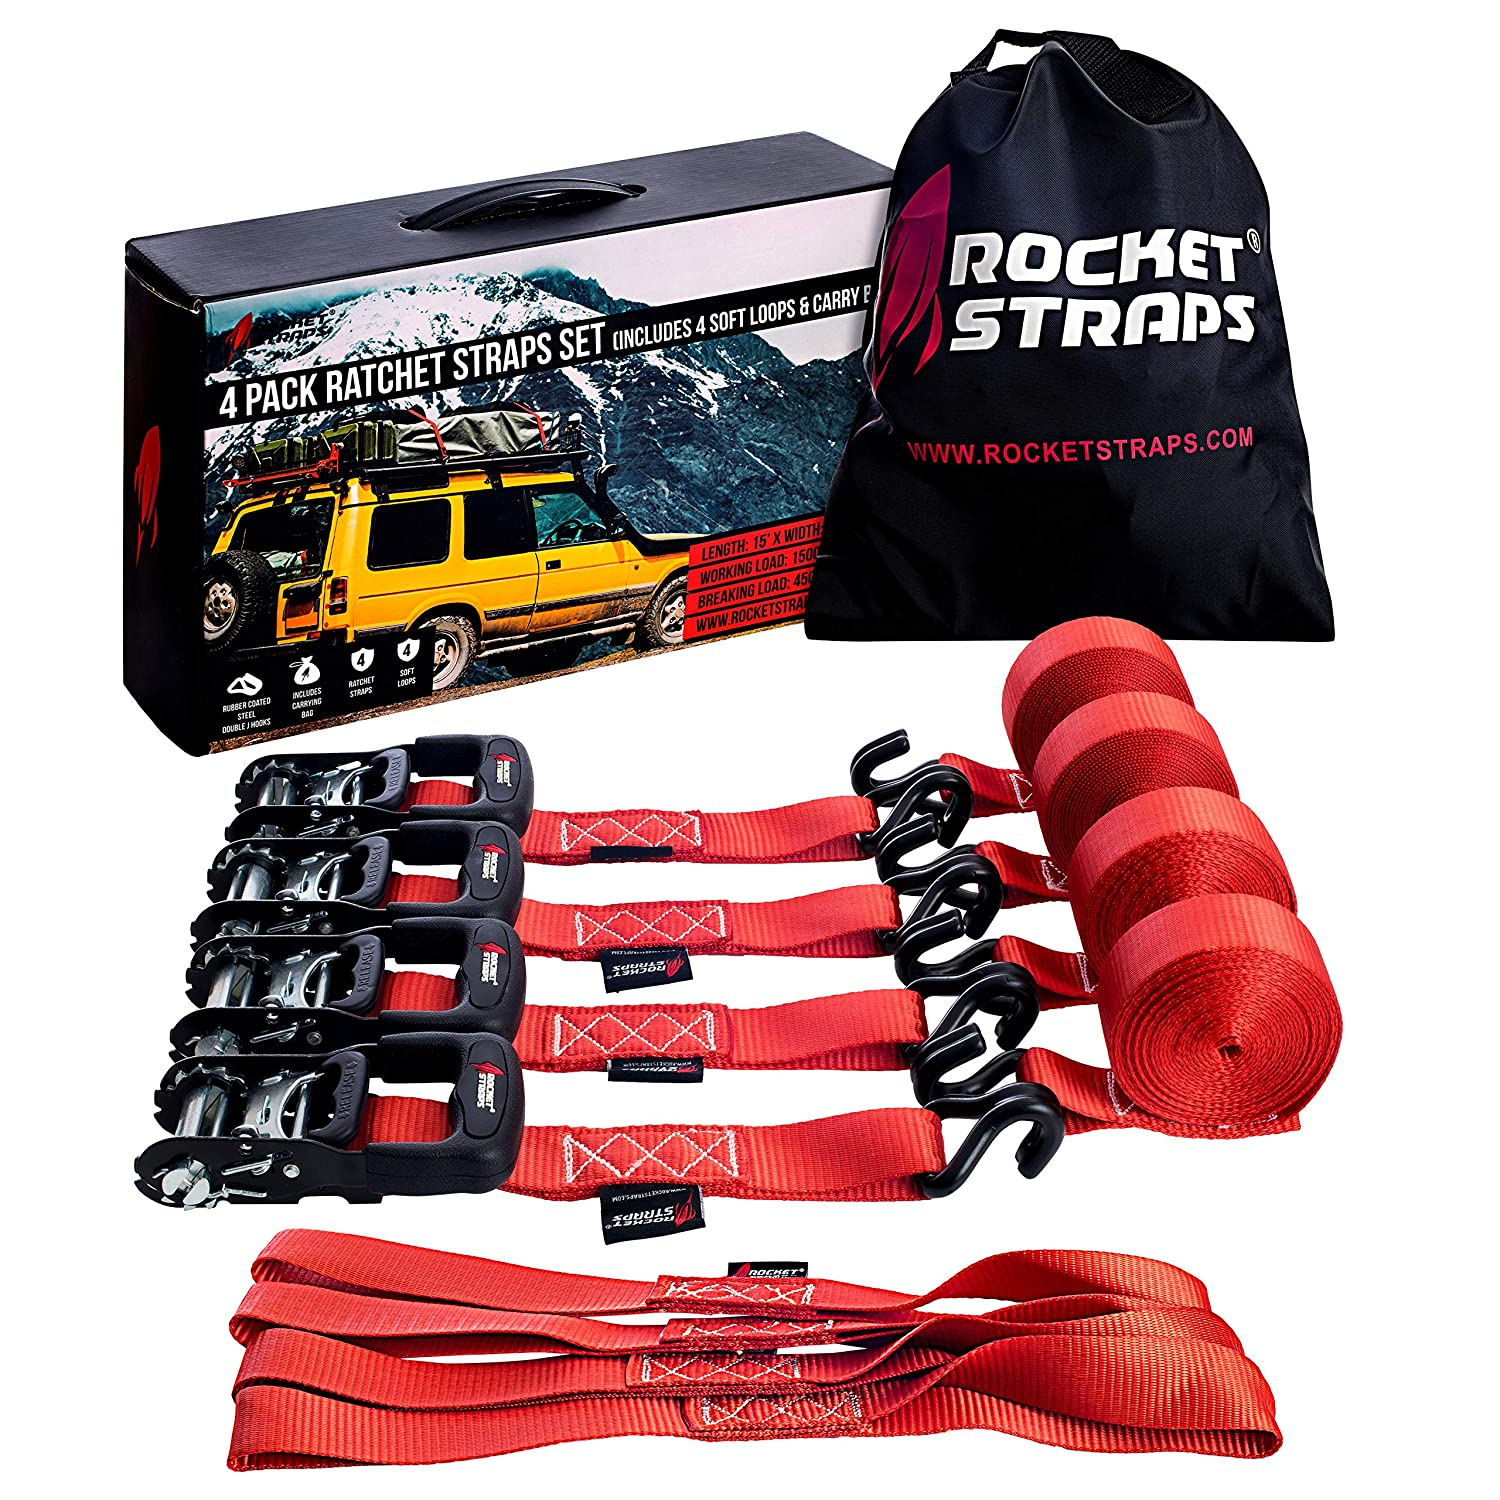 Moving Straps Ratchet Strap Bag Heavy Duty Ratchet Straps 1.5 x 15-4500 lbs Break Strength Ratchet Tie Down Straps I 4 Soft Loops Motorcycle Trailer and Truck Straps Rocket Straps